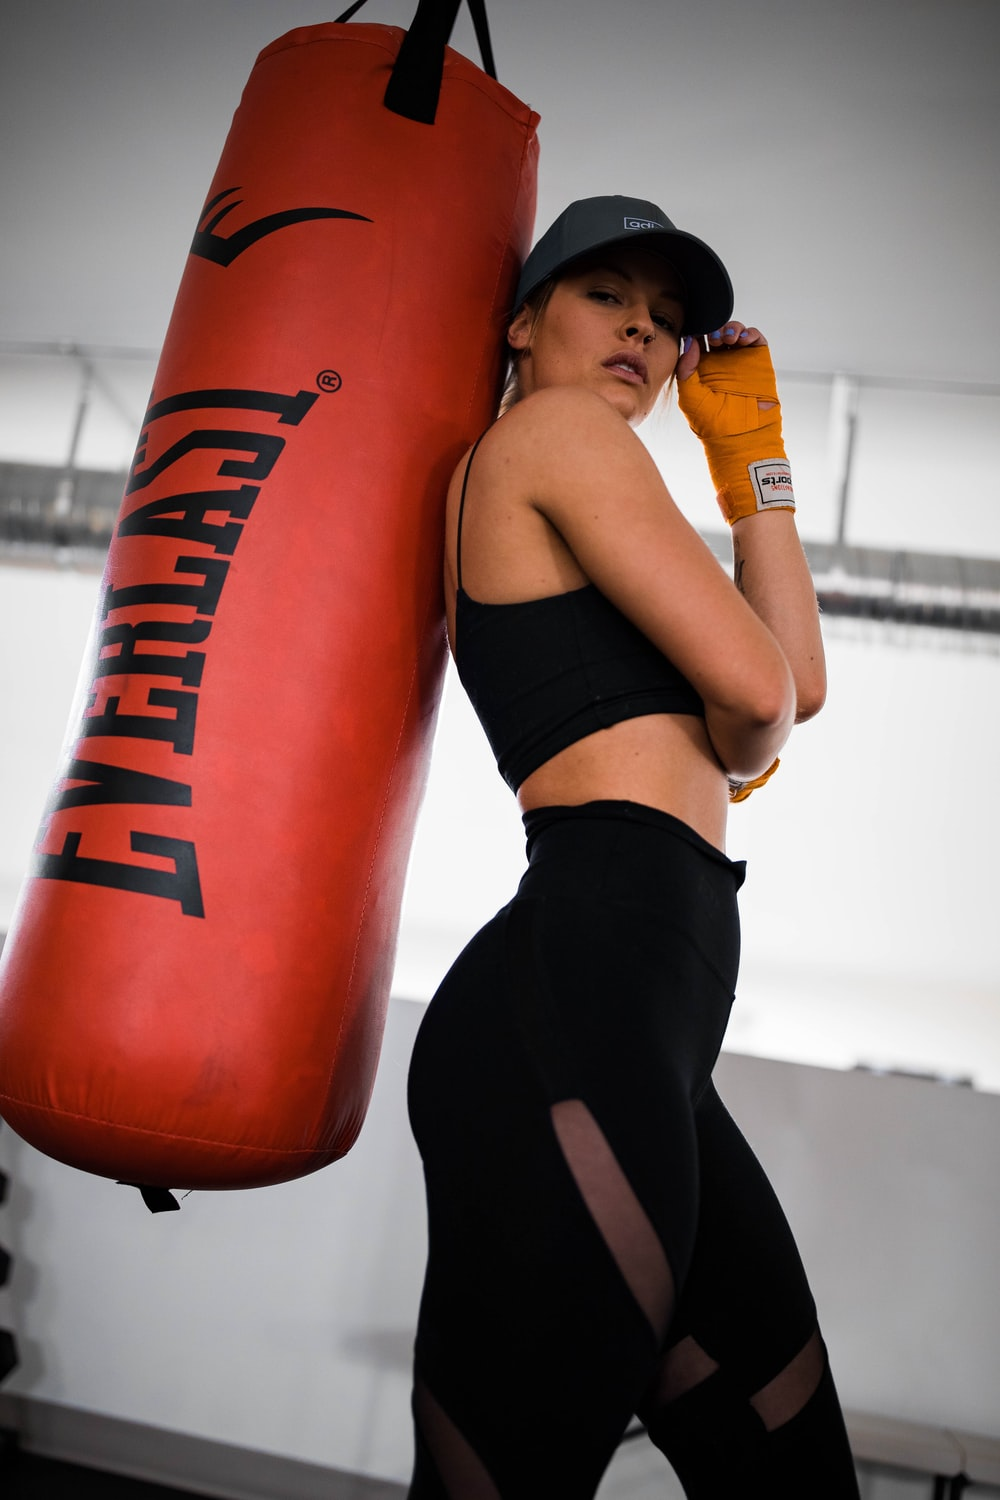 woman in black sports bra and black shorts leaning on orange and black boxing ring